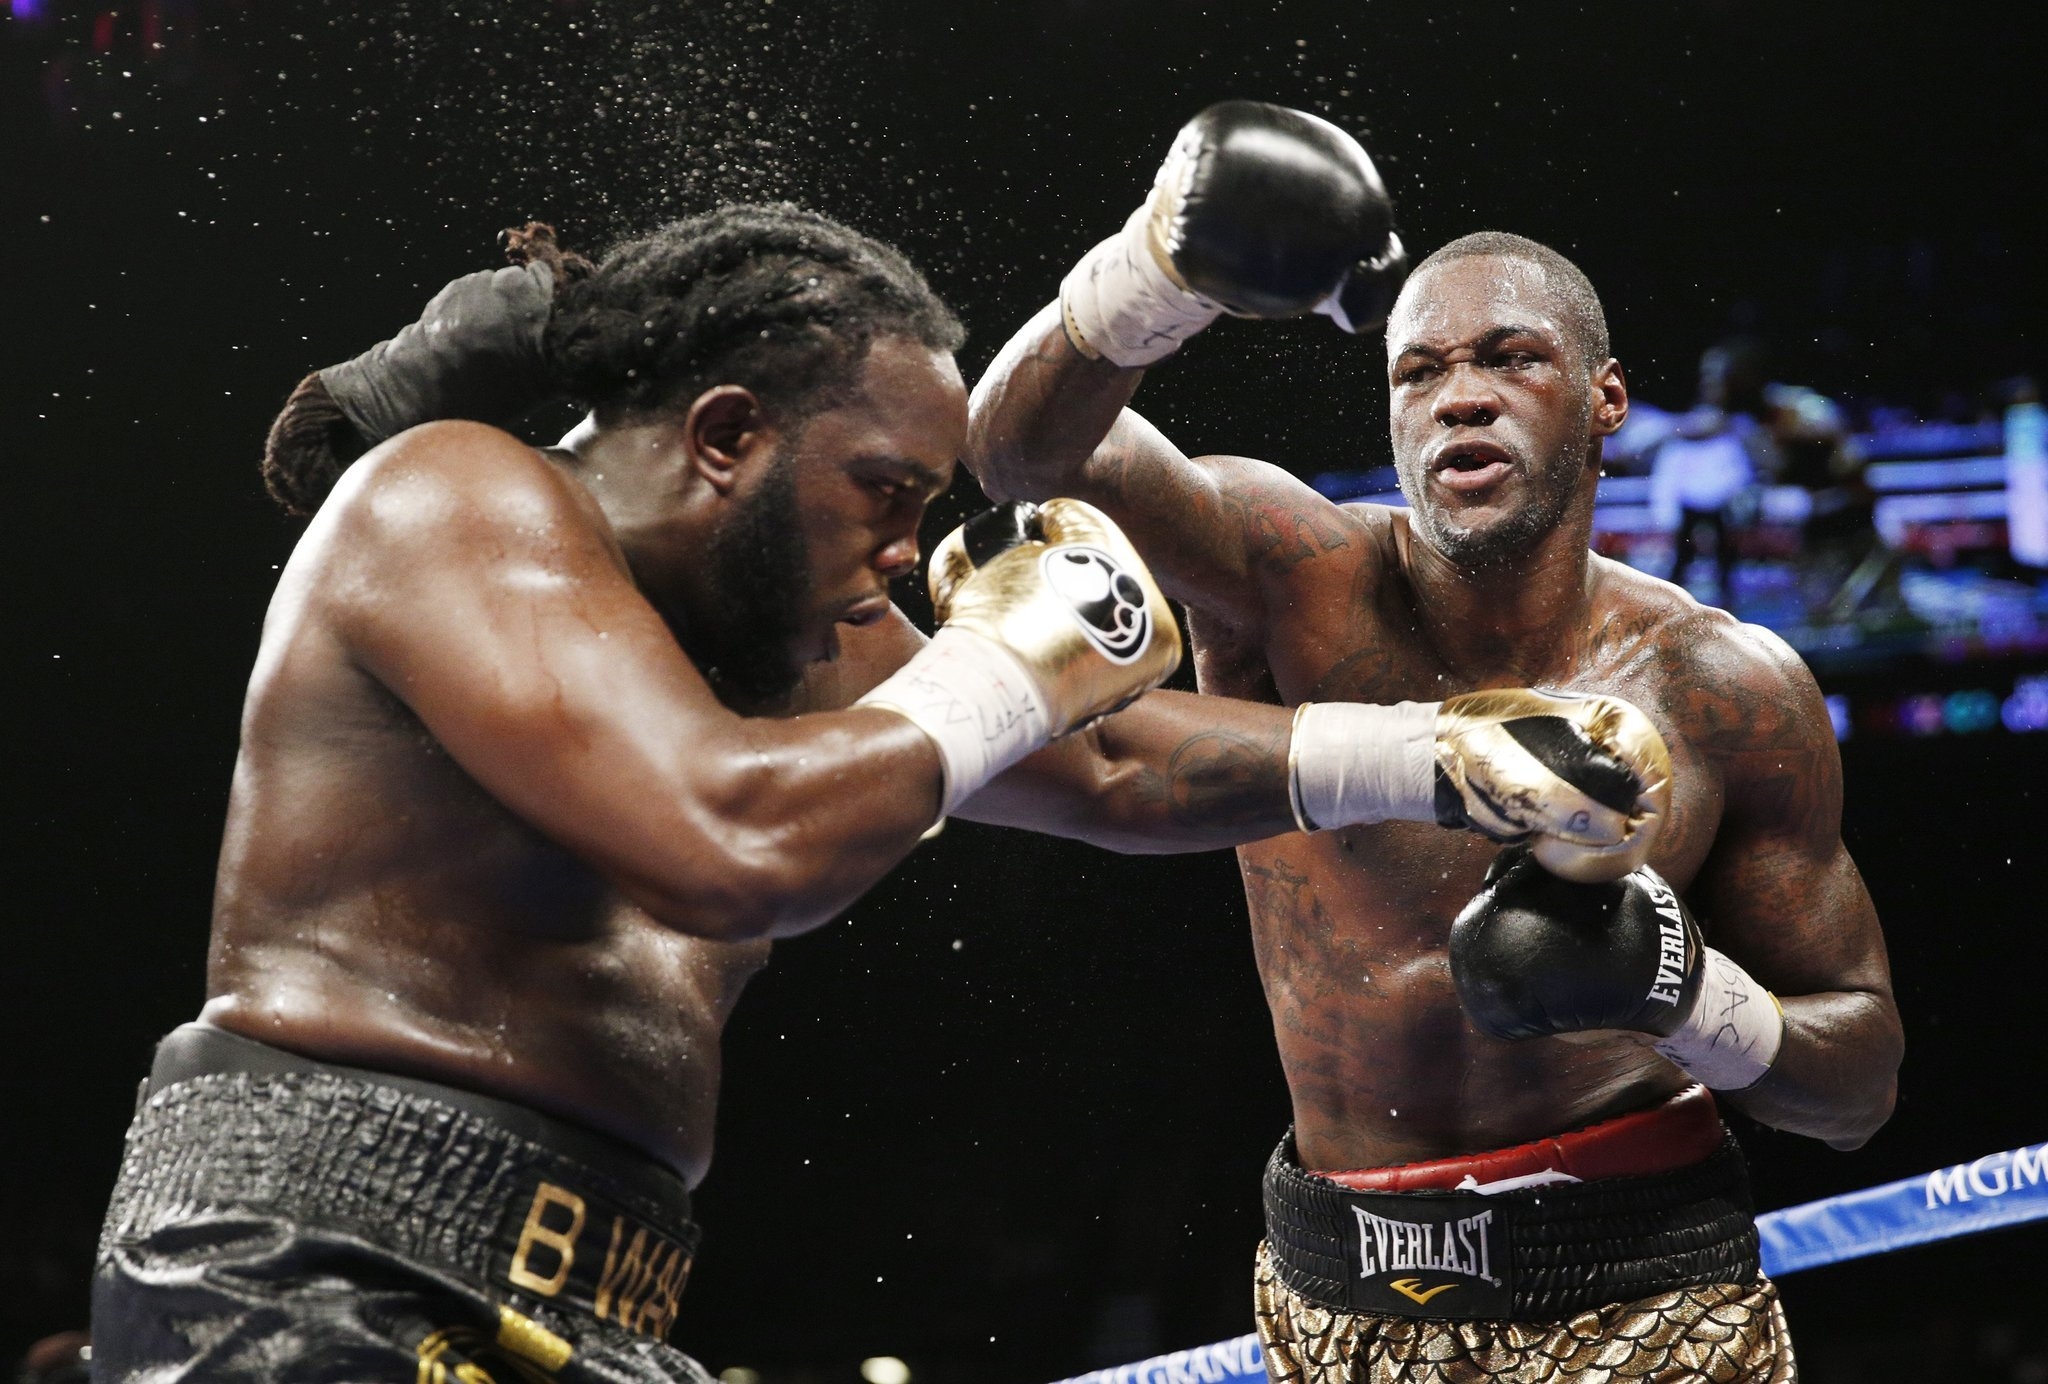 Deontay Wilder daring to go to Russia to defend heavyweight belt - LA Times